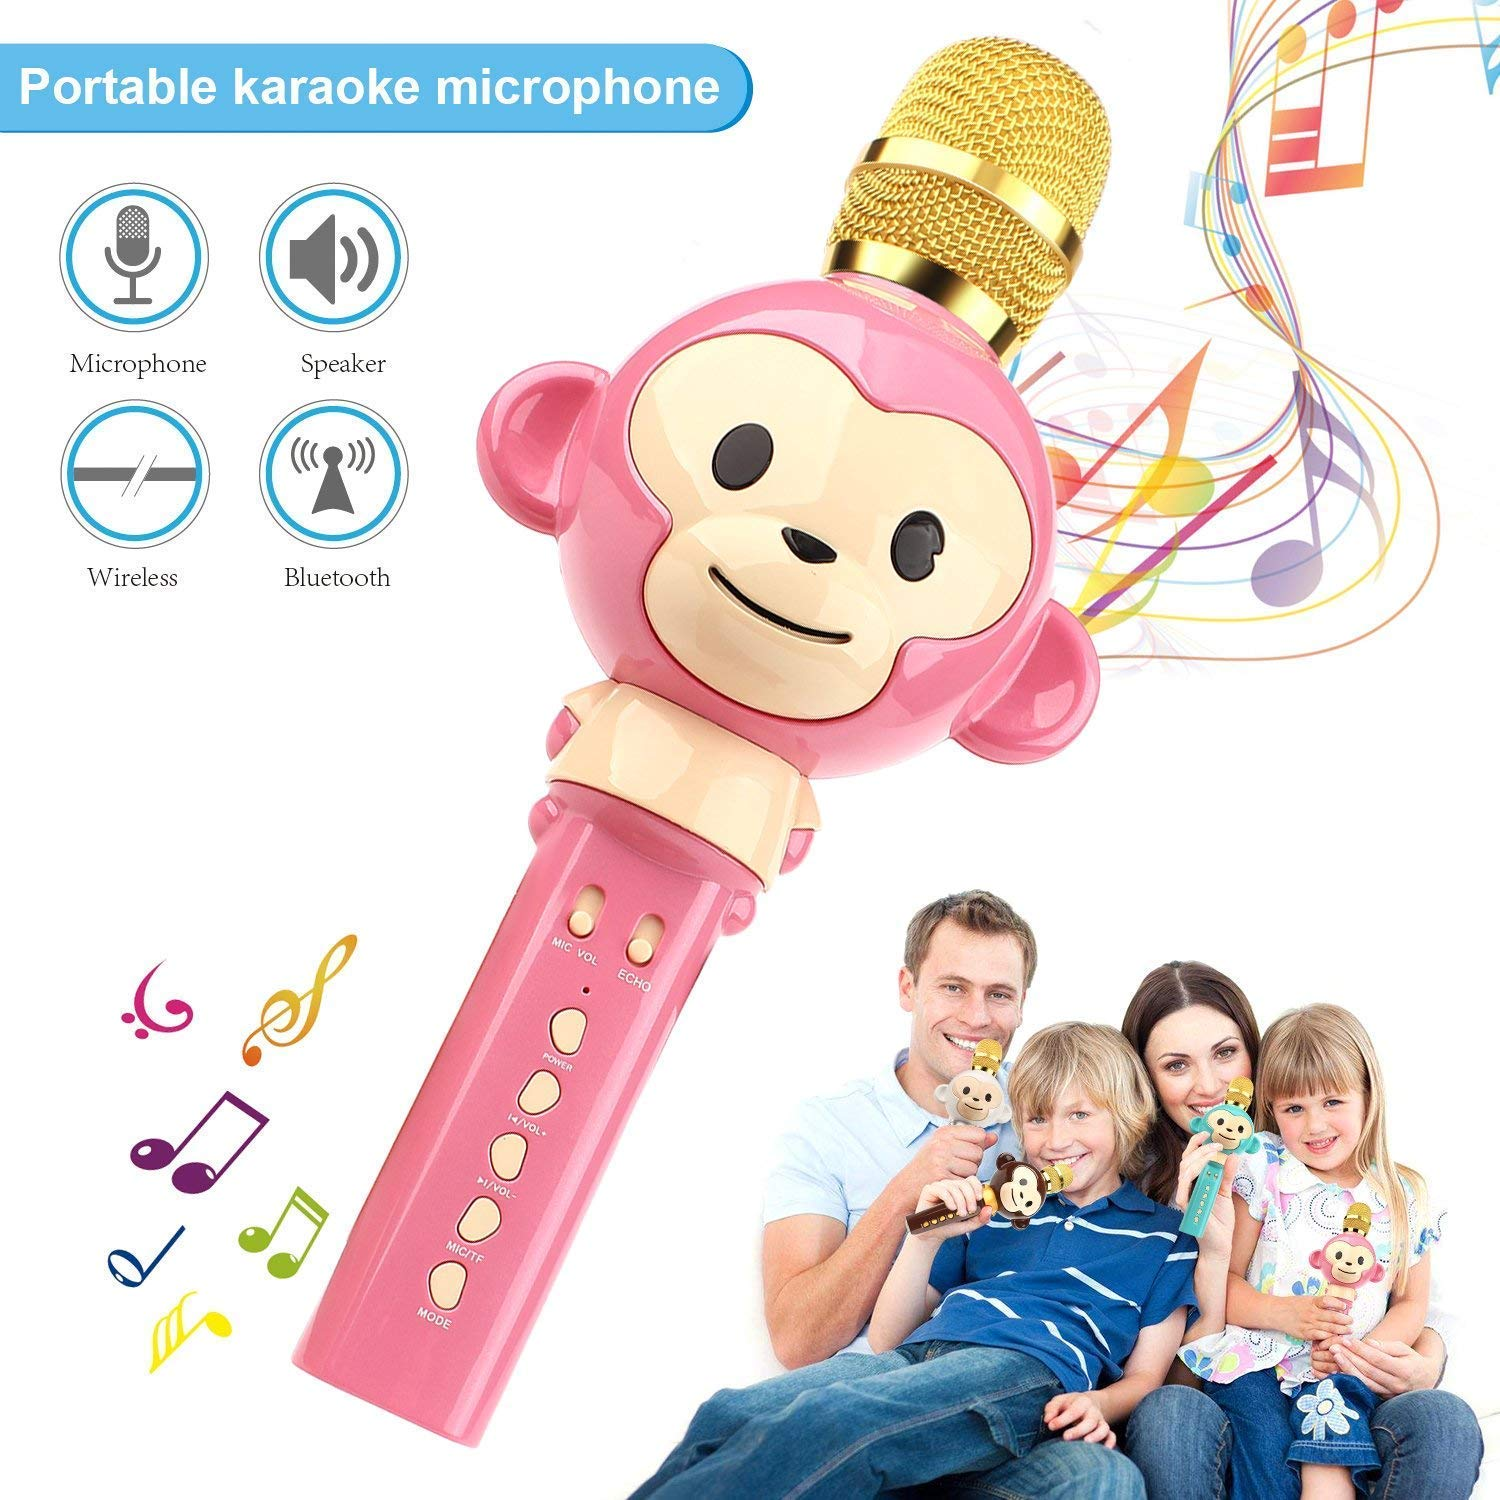 Kids Microphone,Wireless Bluetooth Karaoke Microphone for Kids 3-in-1 Portable Handheld Karaoke Mic Home Party Music Playing Speaker Machine Support iPhone/Android/iPad PC and All Smartphone (Pink)